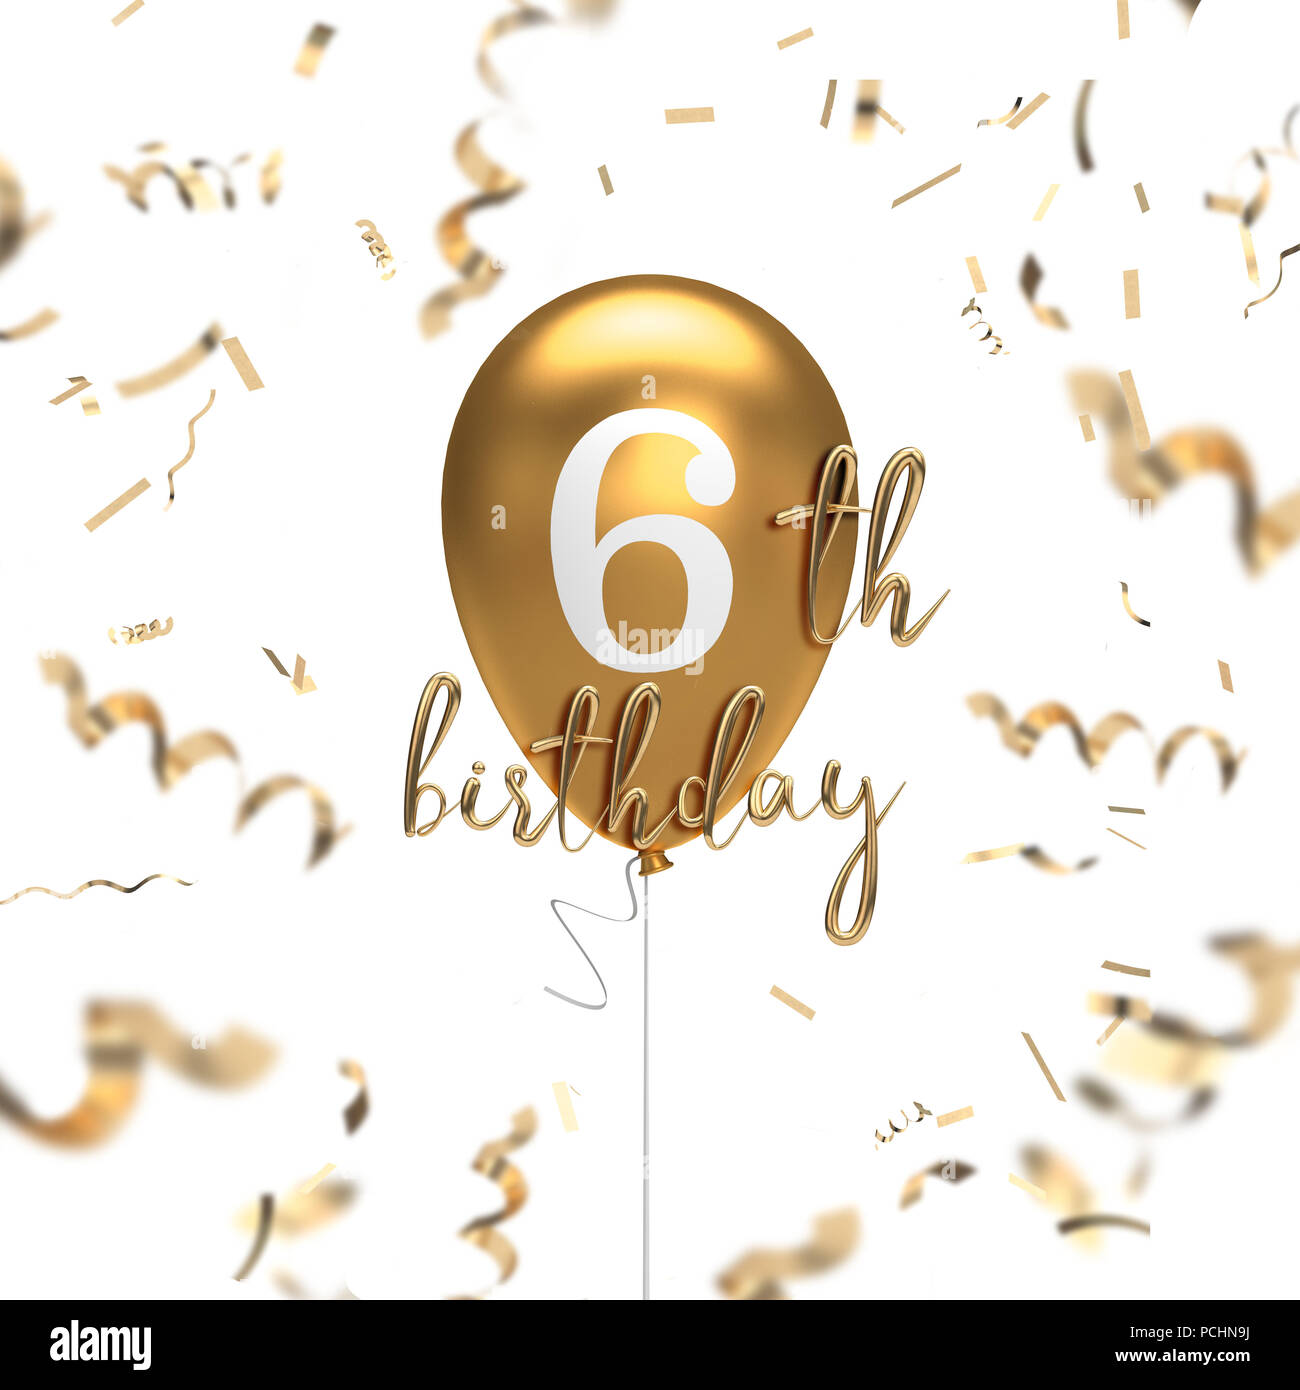 Happy 6th Birthday Gold Balloon Greeting Background 3D Rendering